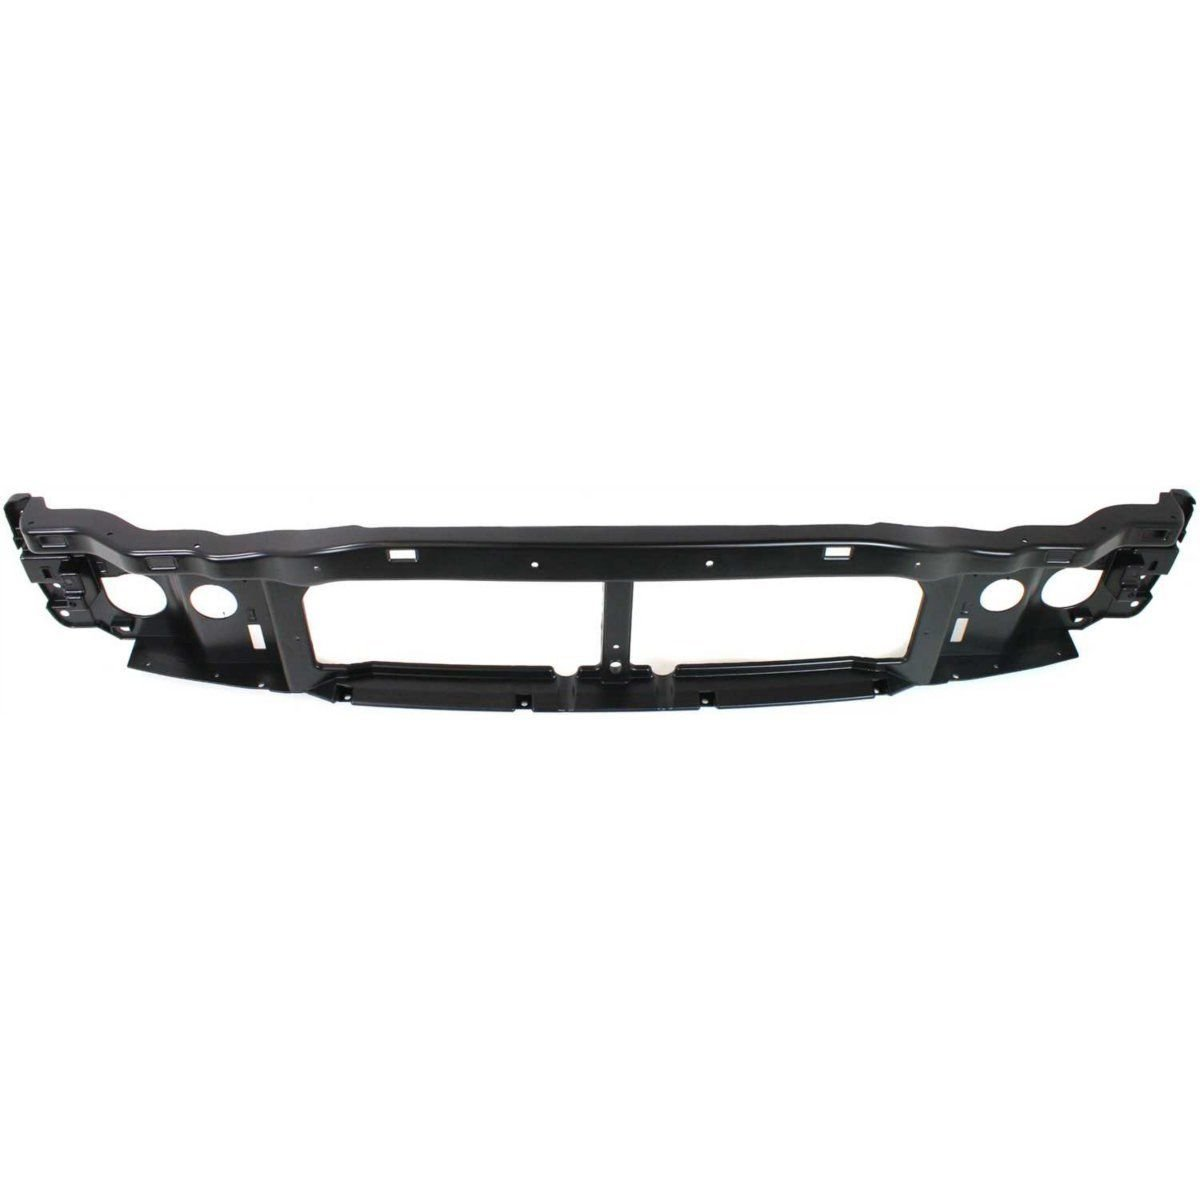 New Nose Panel For 2001-2003 Ford Ranger Edison//Twin Cities Plant Abs Plastic FO1220219 1L5Z8A284AB